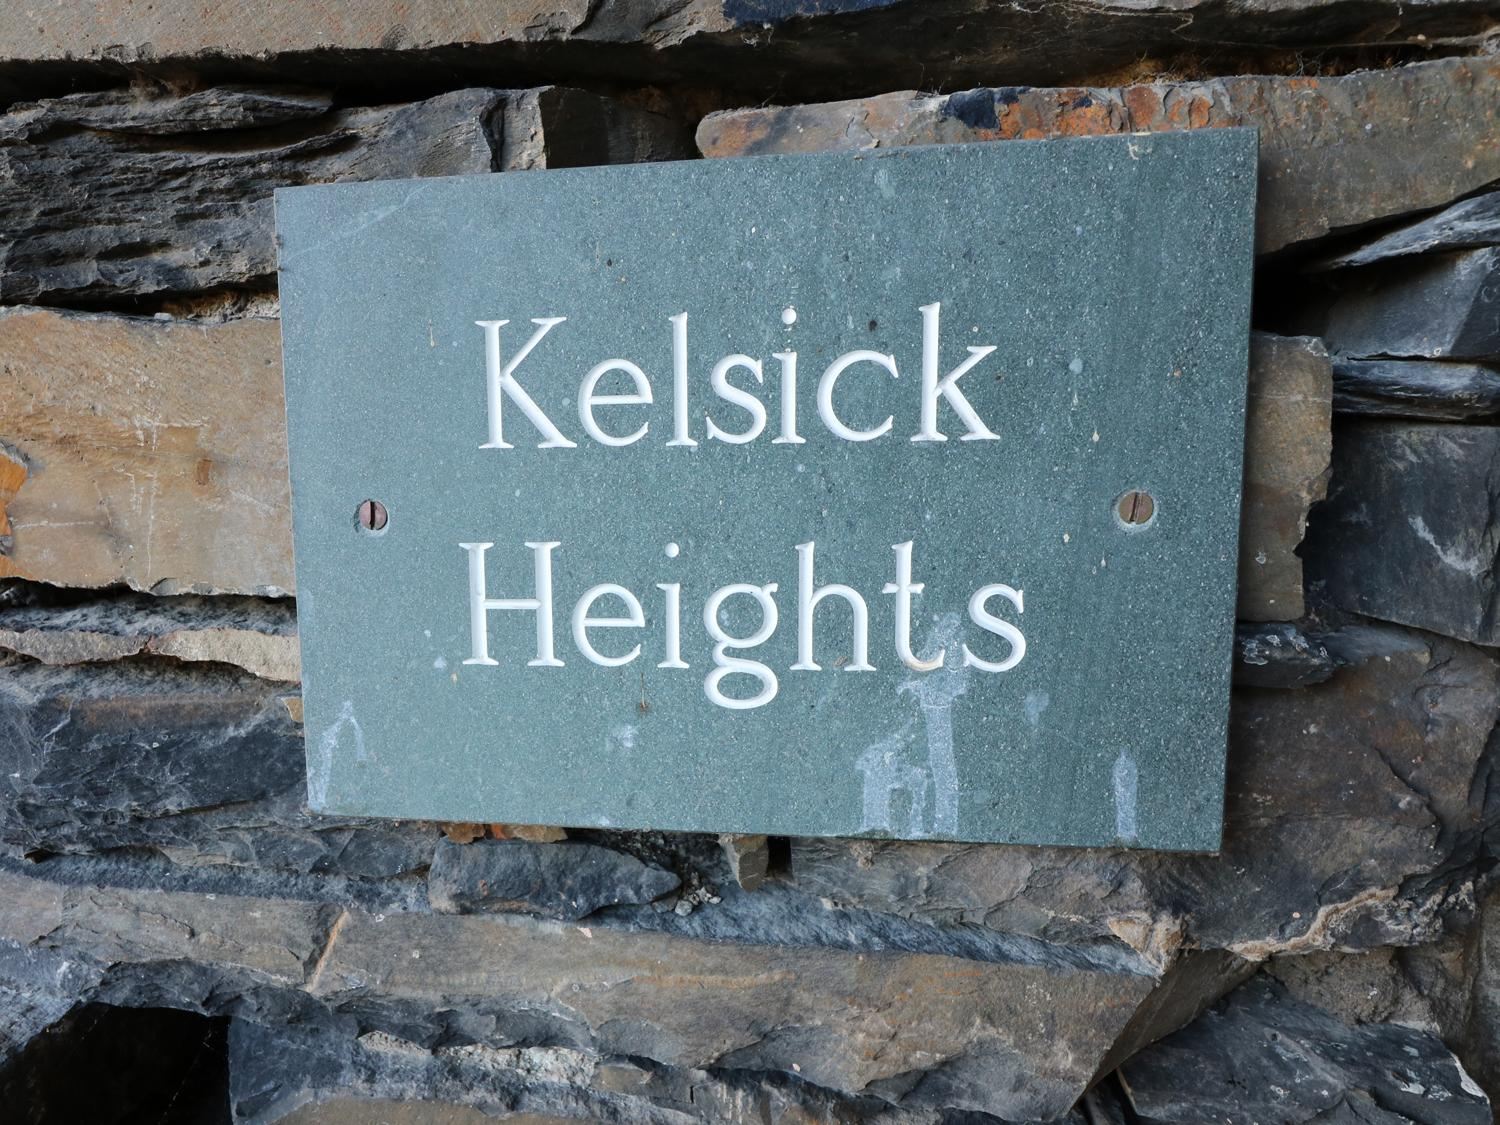 Kelsick Heights